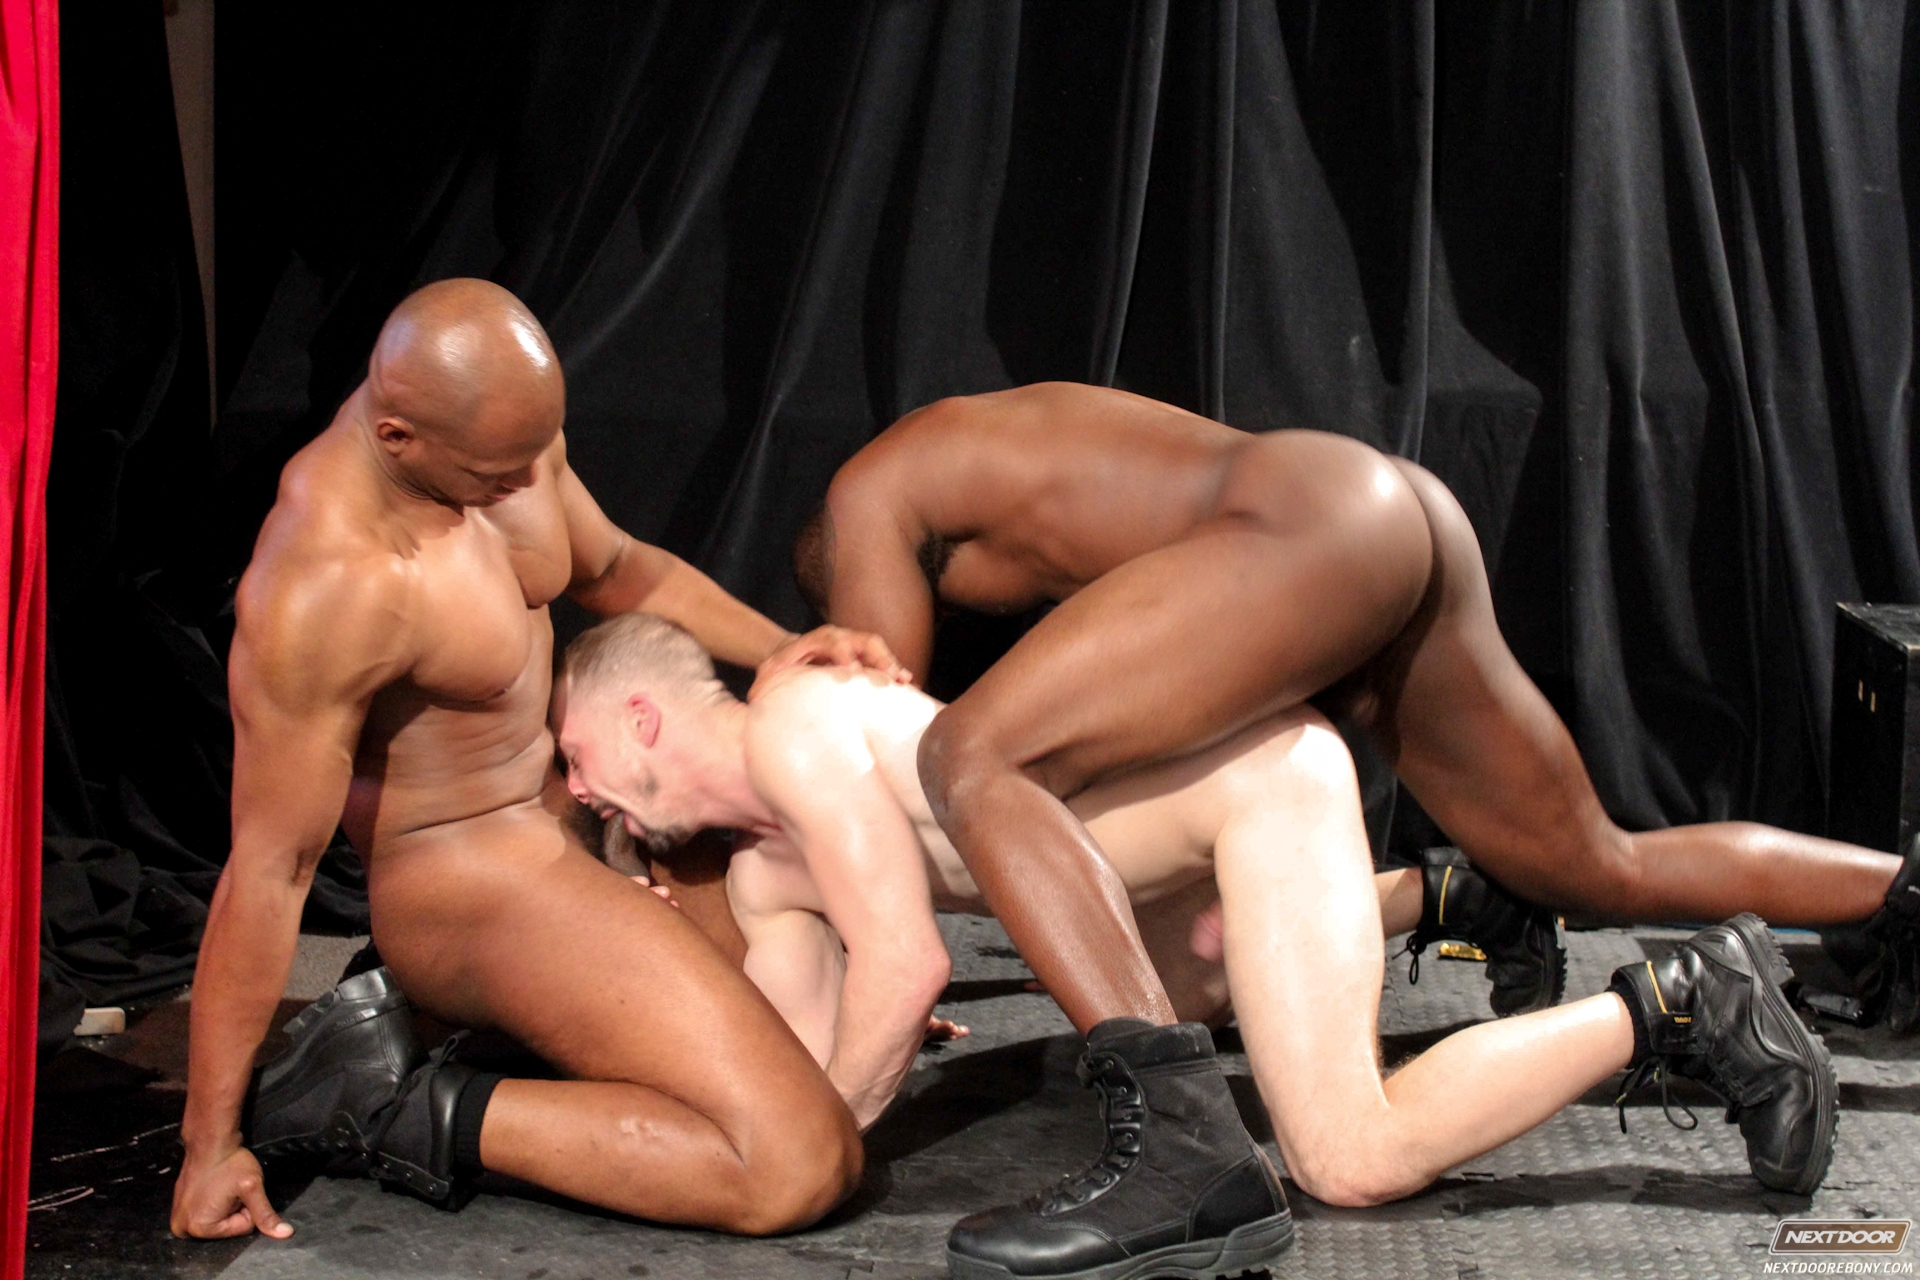 Interracial threeways gay tubes